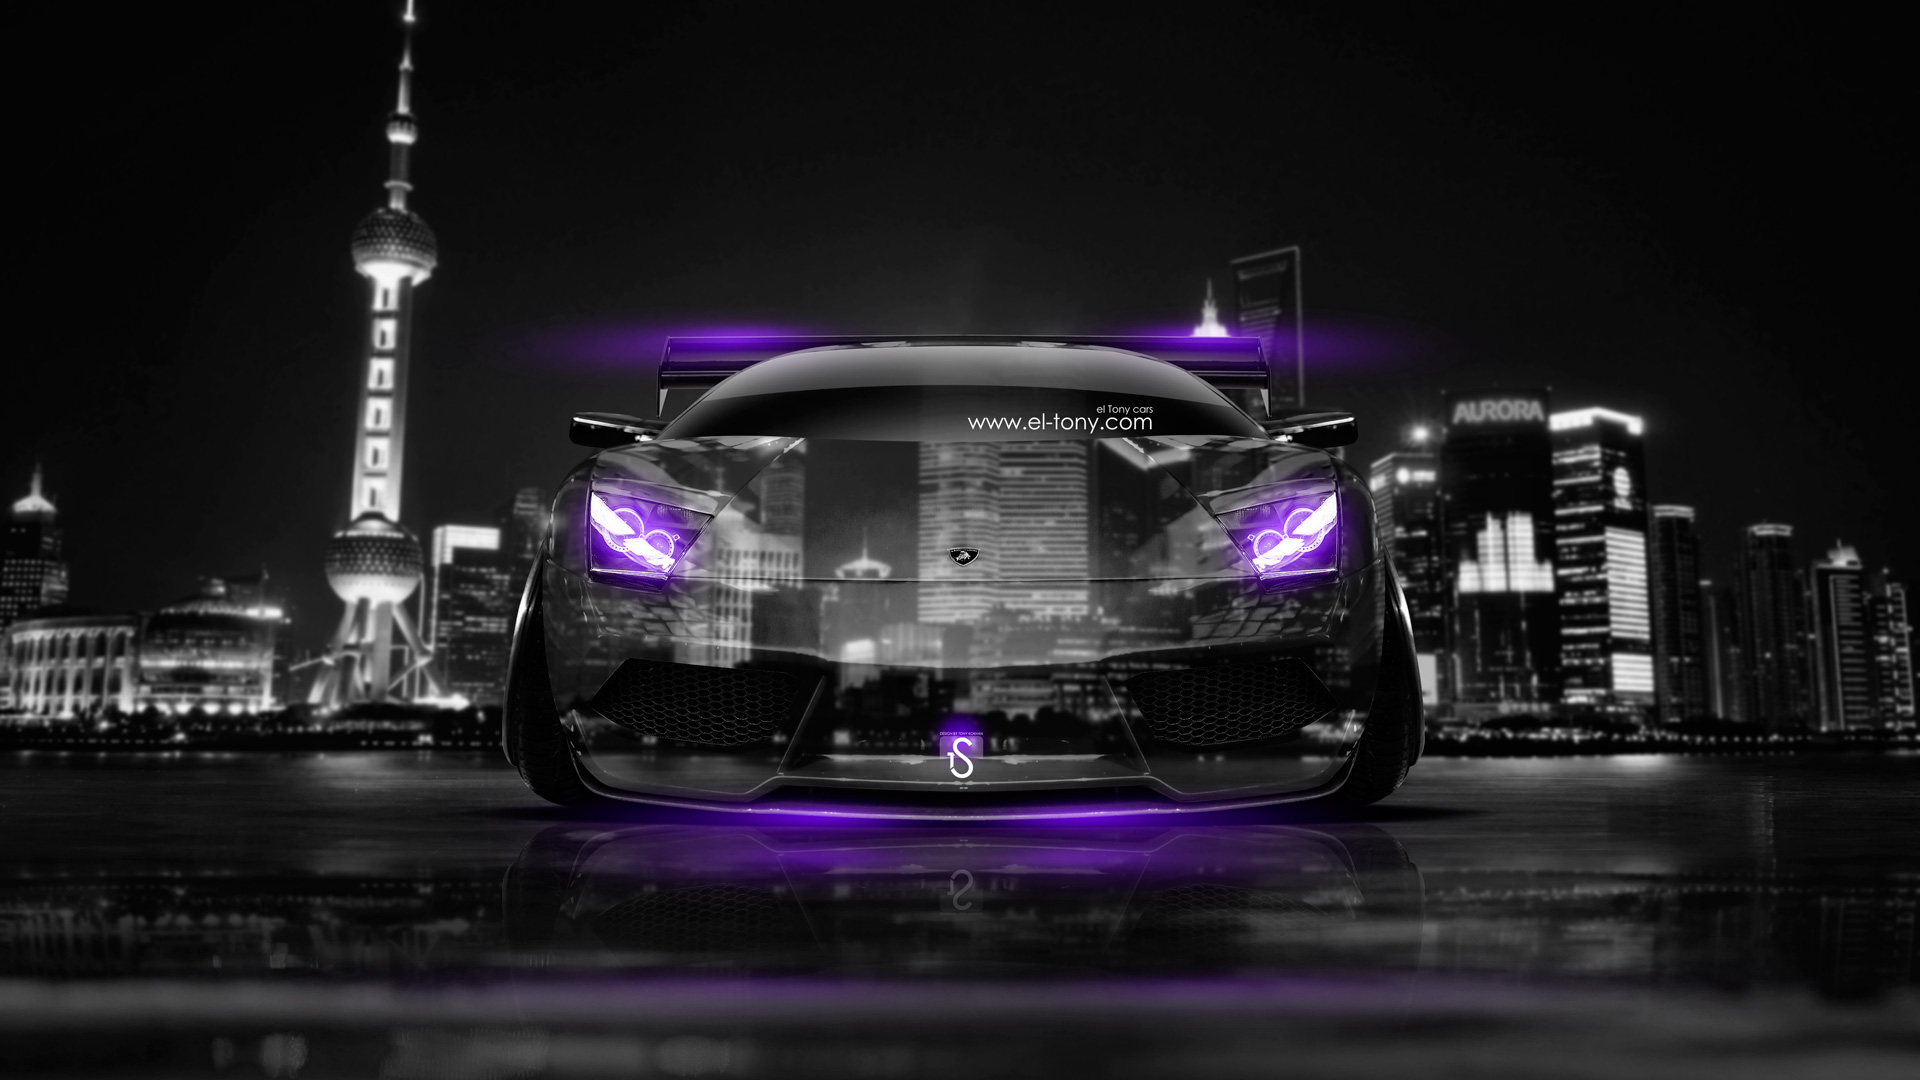 Captivating Lamborghini Murcielago Tuning Front Crystal City Car 2014